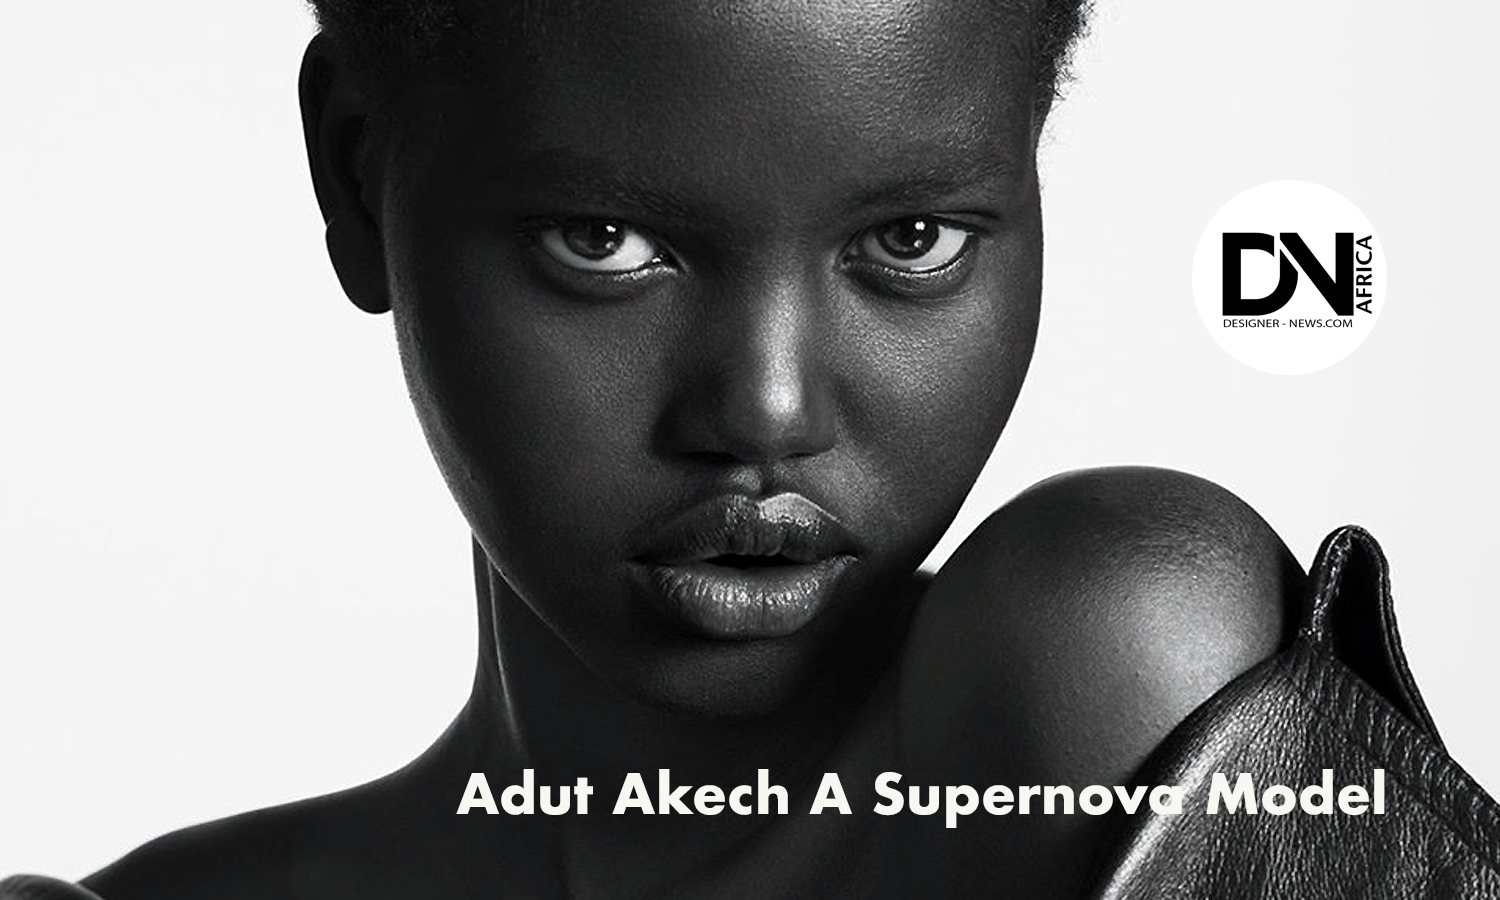 AFRICAN FASHION STYLE MAGAZINE - Adut-Akech-A-Supernova-Model from South Sudan - Photographer DAN NGU - Media Partner DN AFRICA - STUDIO 24 NIGERIA - STUDIO 24 INTERNATIONAL - Ifeanyi Christopher Oputa MD AND CEO OF COLVI LIMITED AND STUDIO 24 - CHEVEUX CHERIE and CHEVEUX CHERIE STUDIO BY MARIEME DUBOZ- Fashion Editor Nahomie NOOR COULIBALY